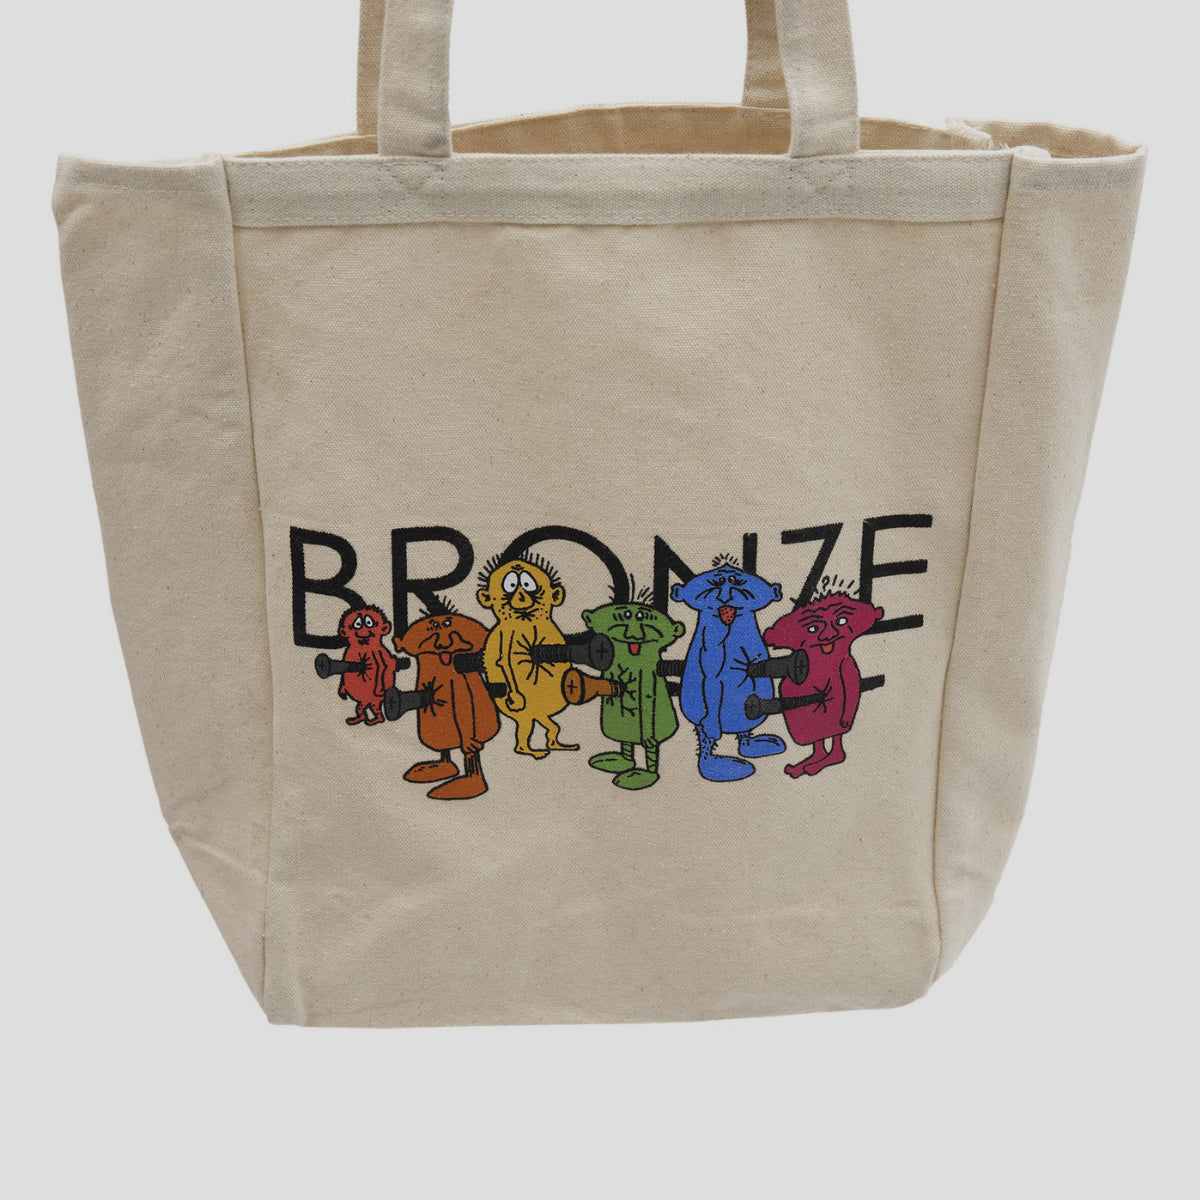 "BRONZE 56K ""BOLT BOYS"" TOTE BAG"